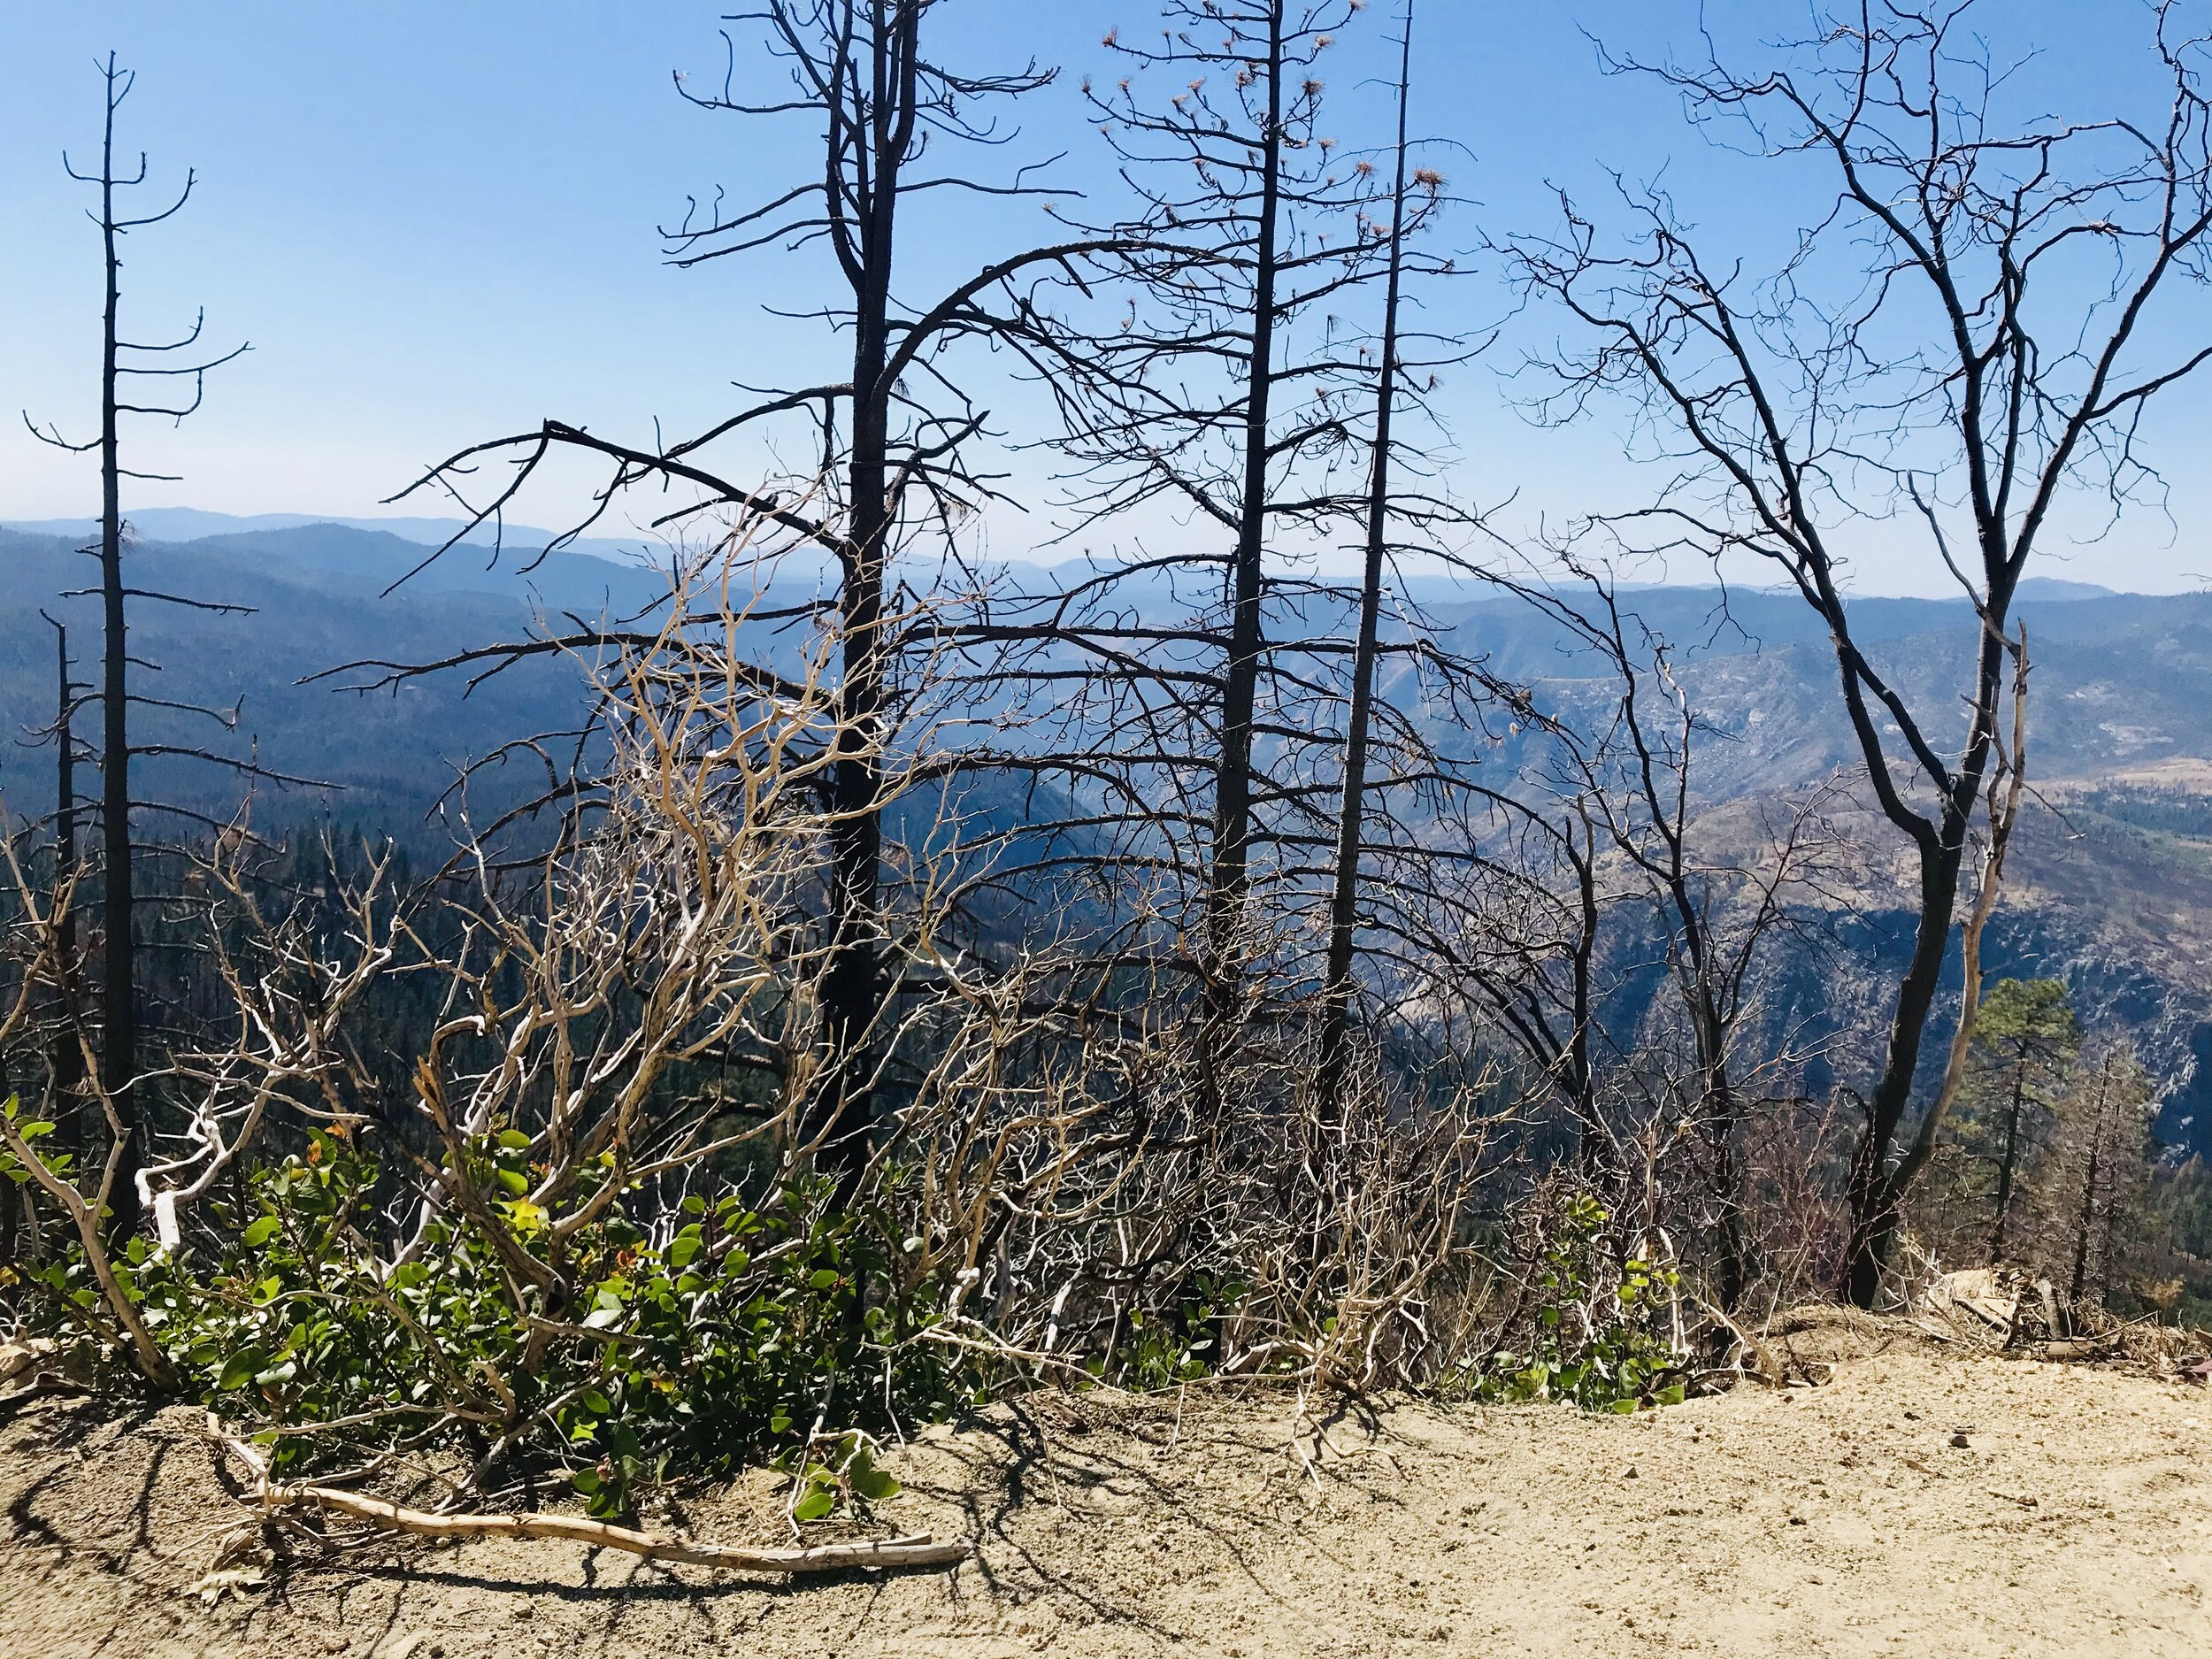 Burnt trees everywhere, but the landscape is coming back to life to varying degrees.